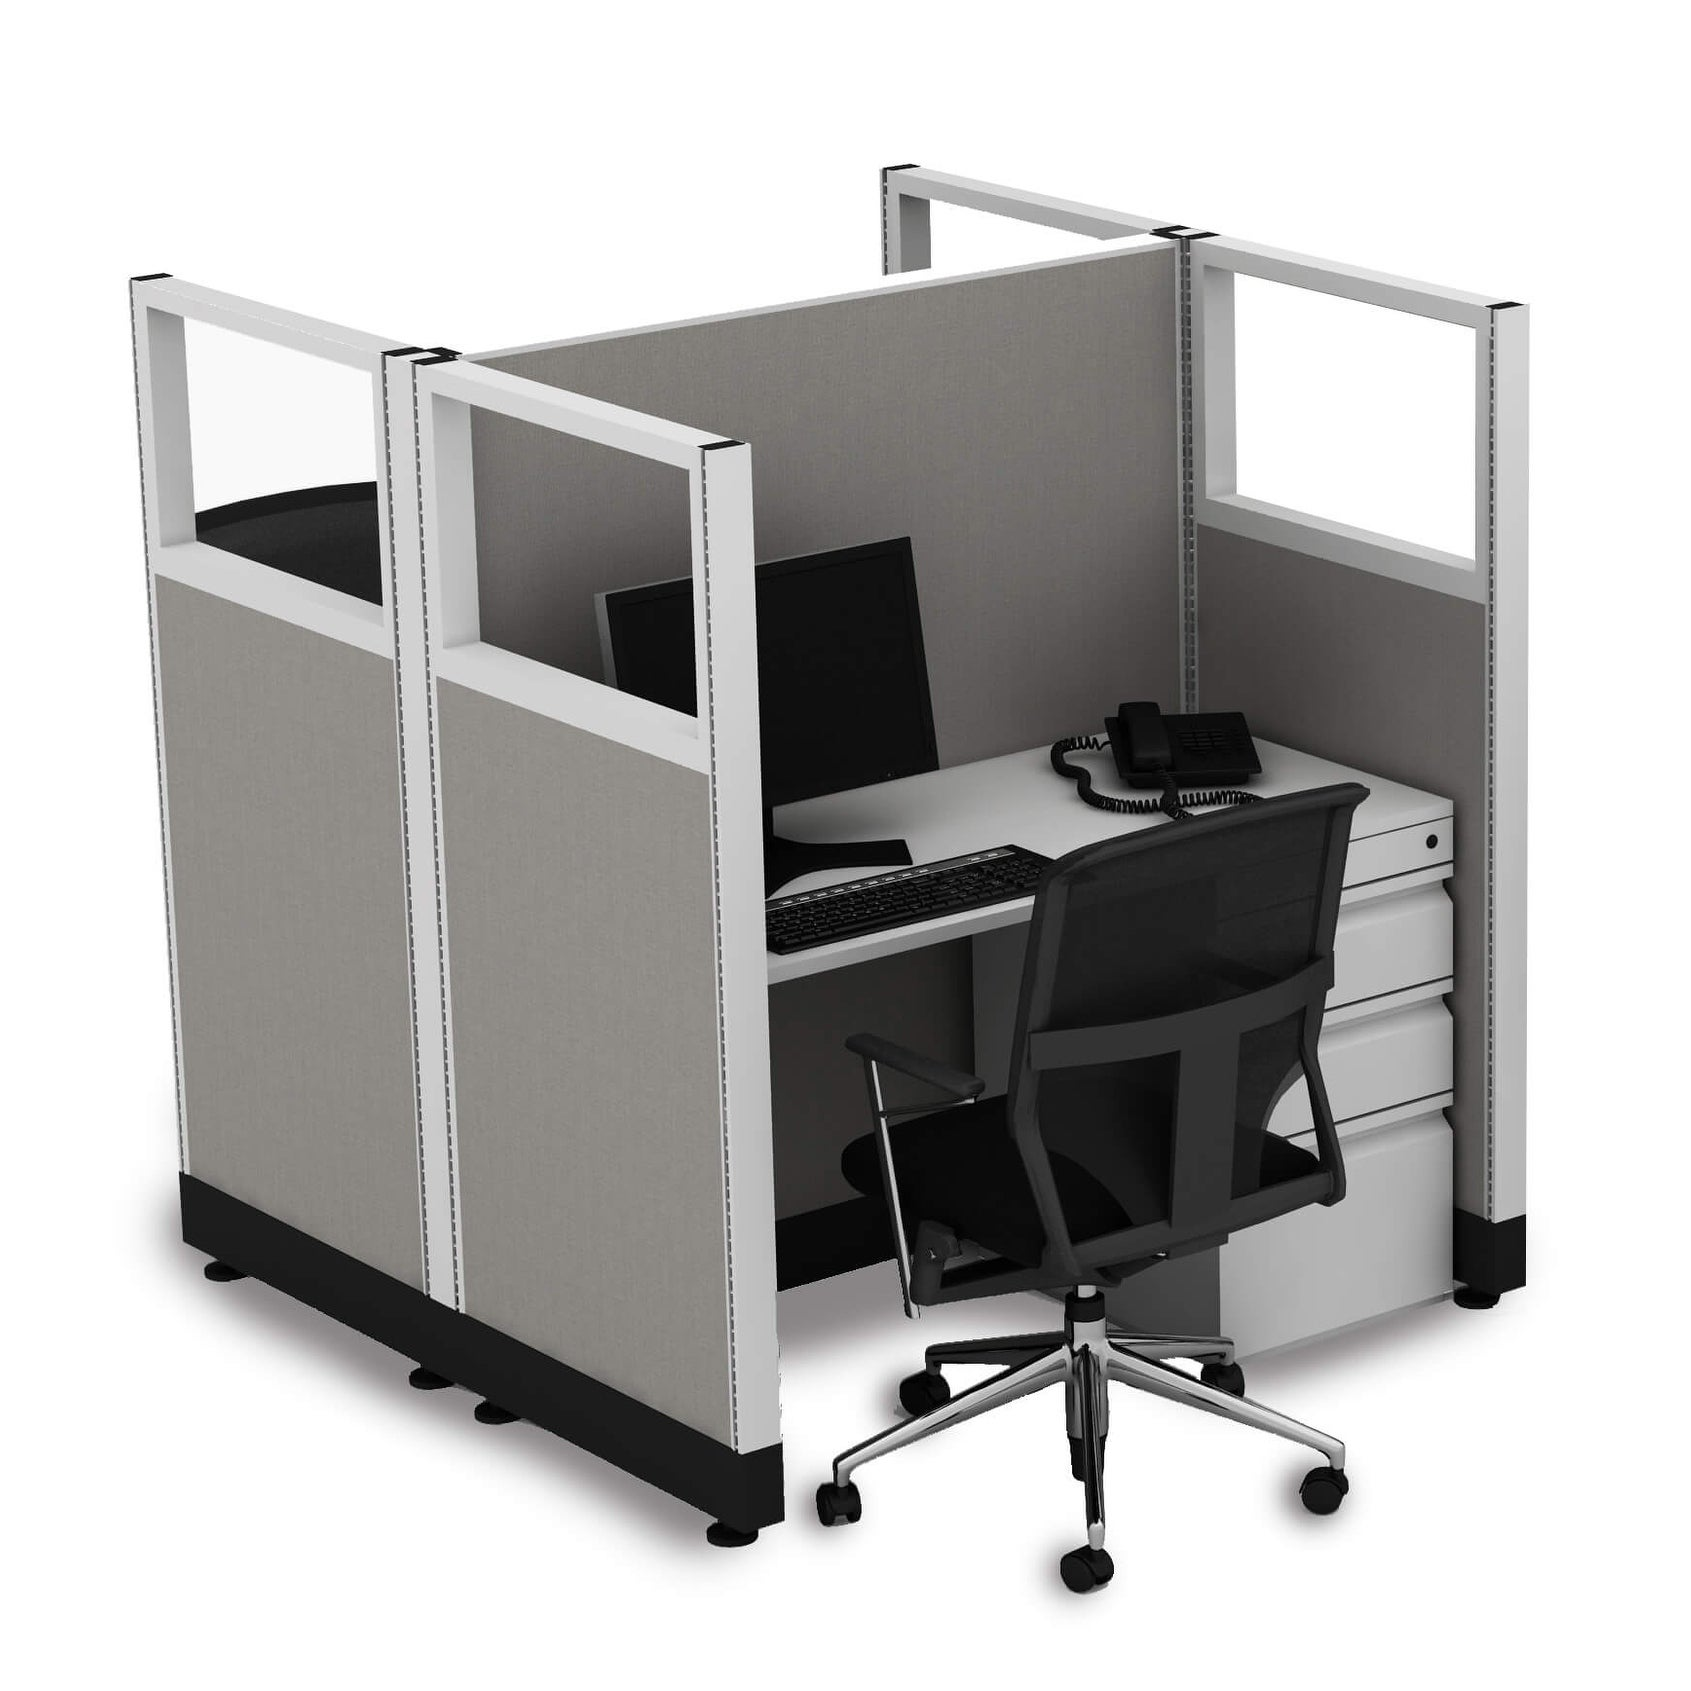 Cubicle Workstations 53H 2pack Cluster Powered (2x3 - Espresso Desk White Paint - Assembly Required)